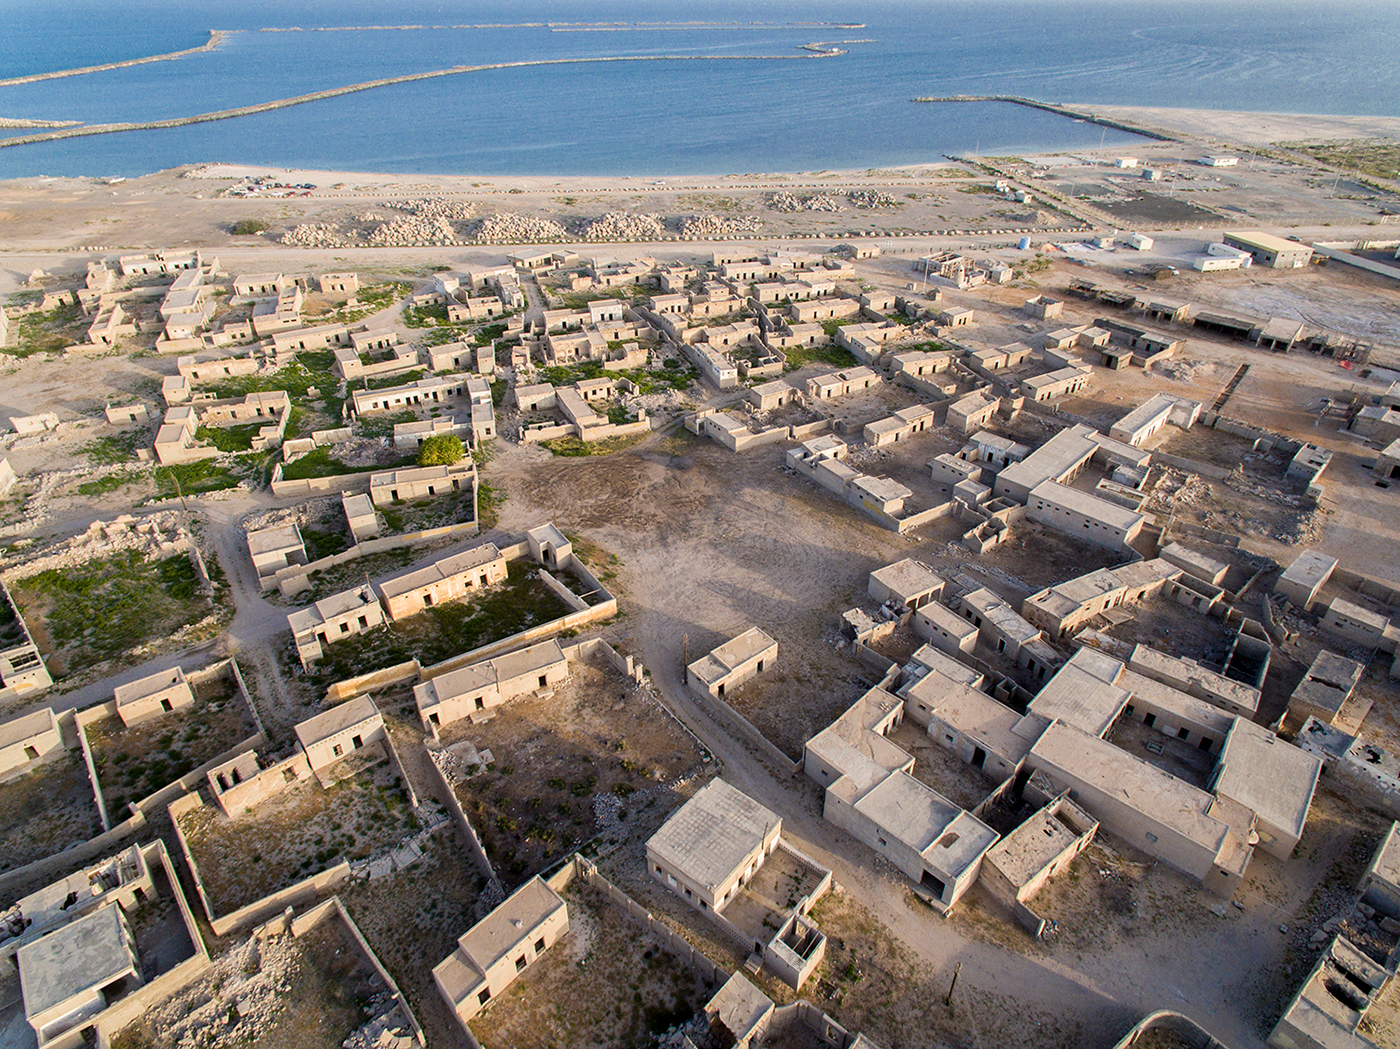 An aerial shot of Al Jazirat Al Hamra